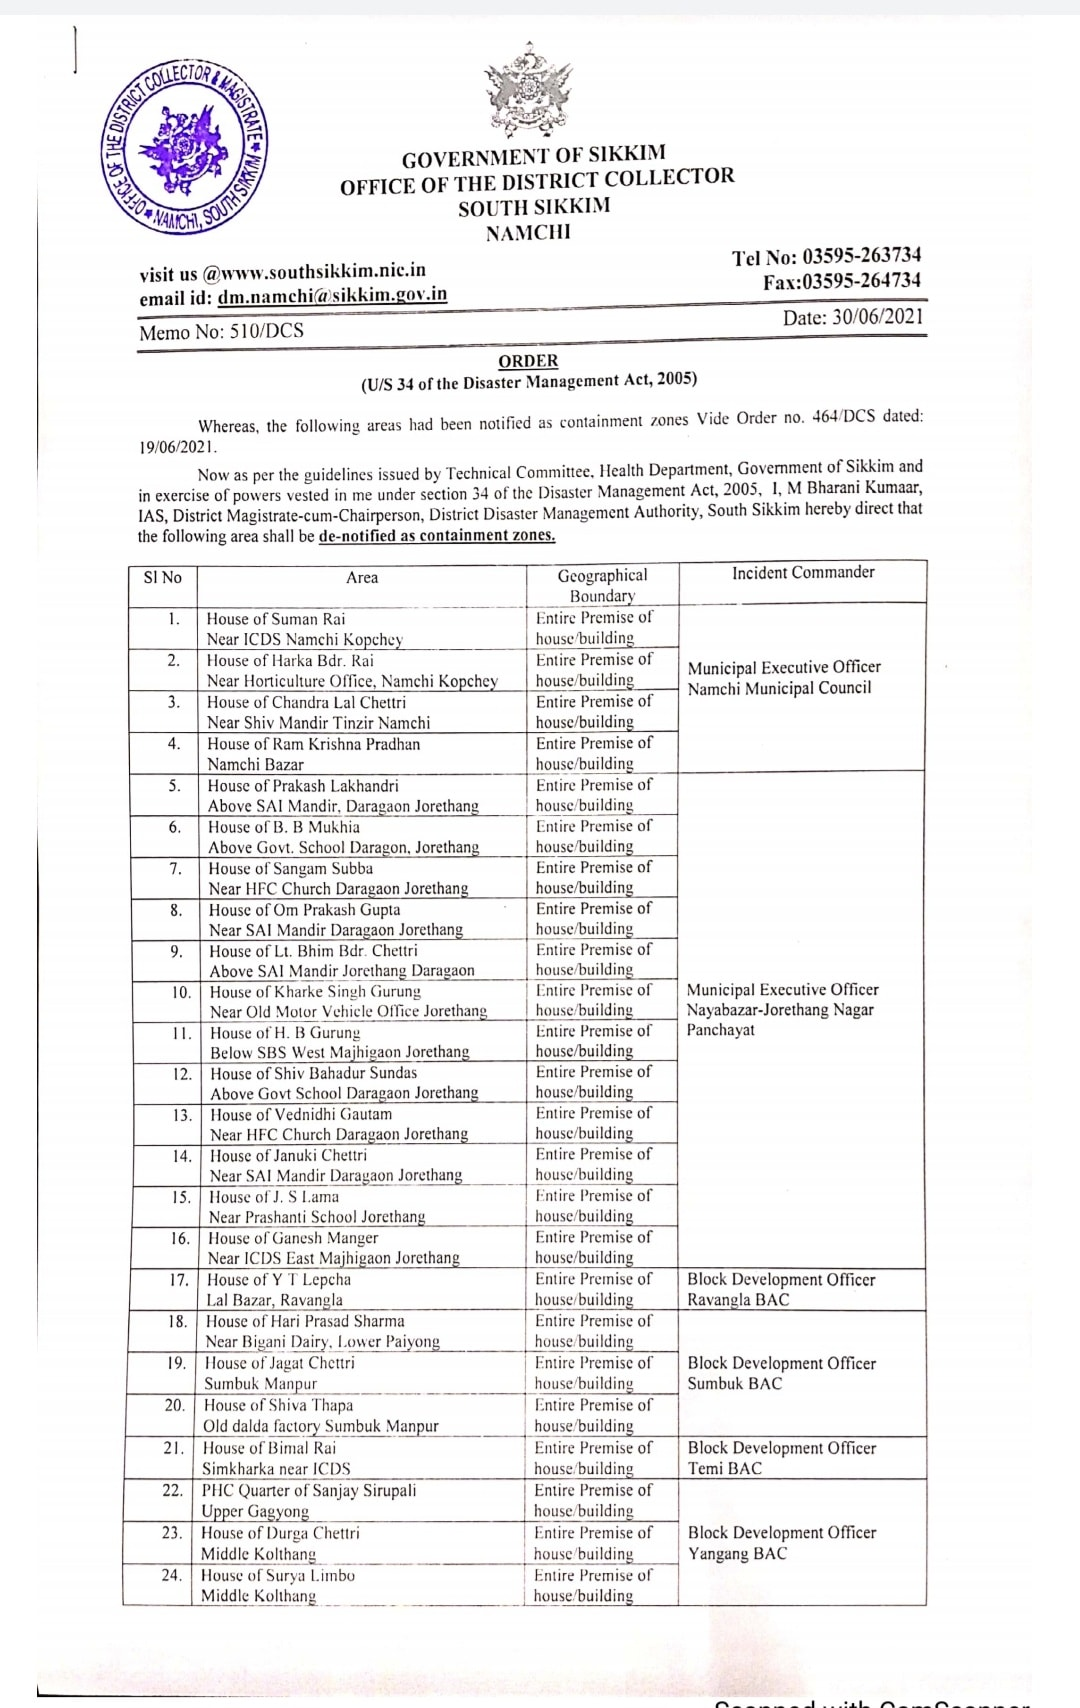 Following premises have been de notified as containment zone under South District